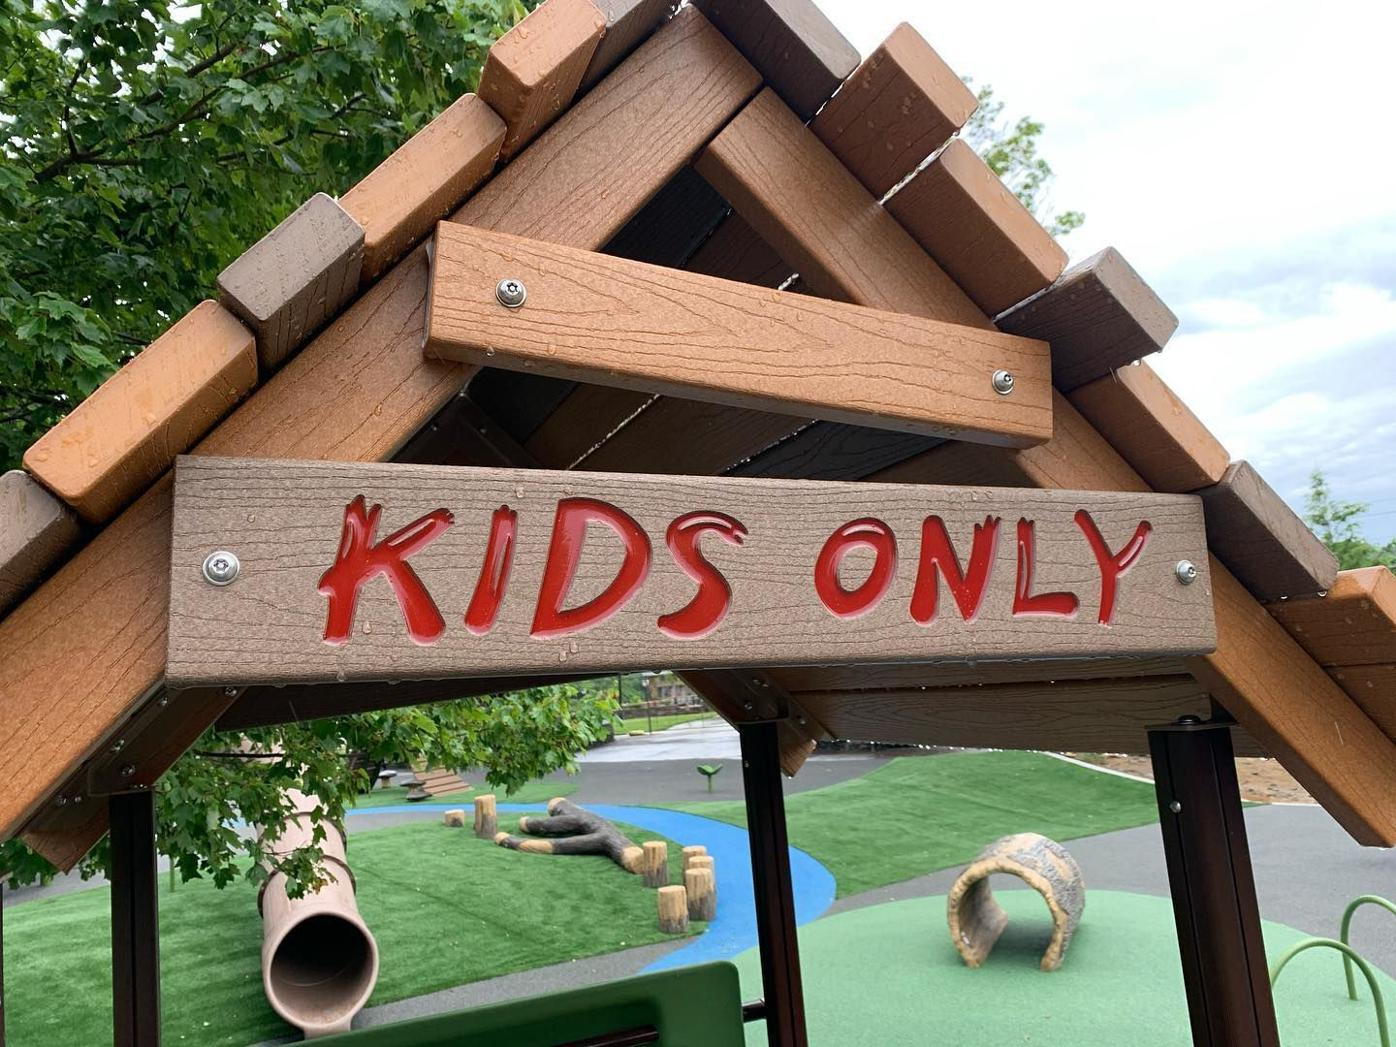 Kids only sign